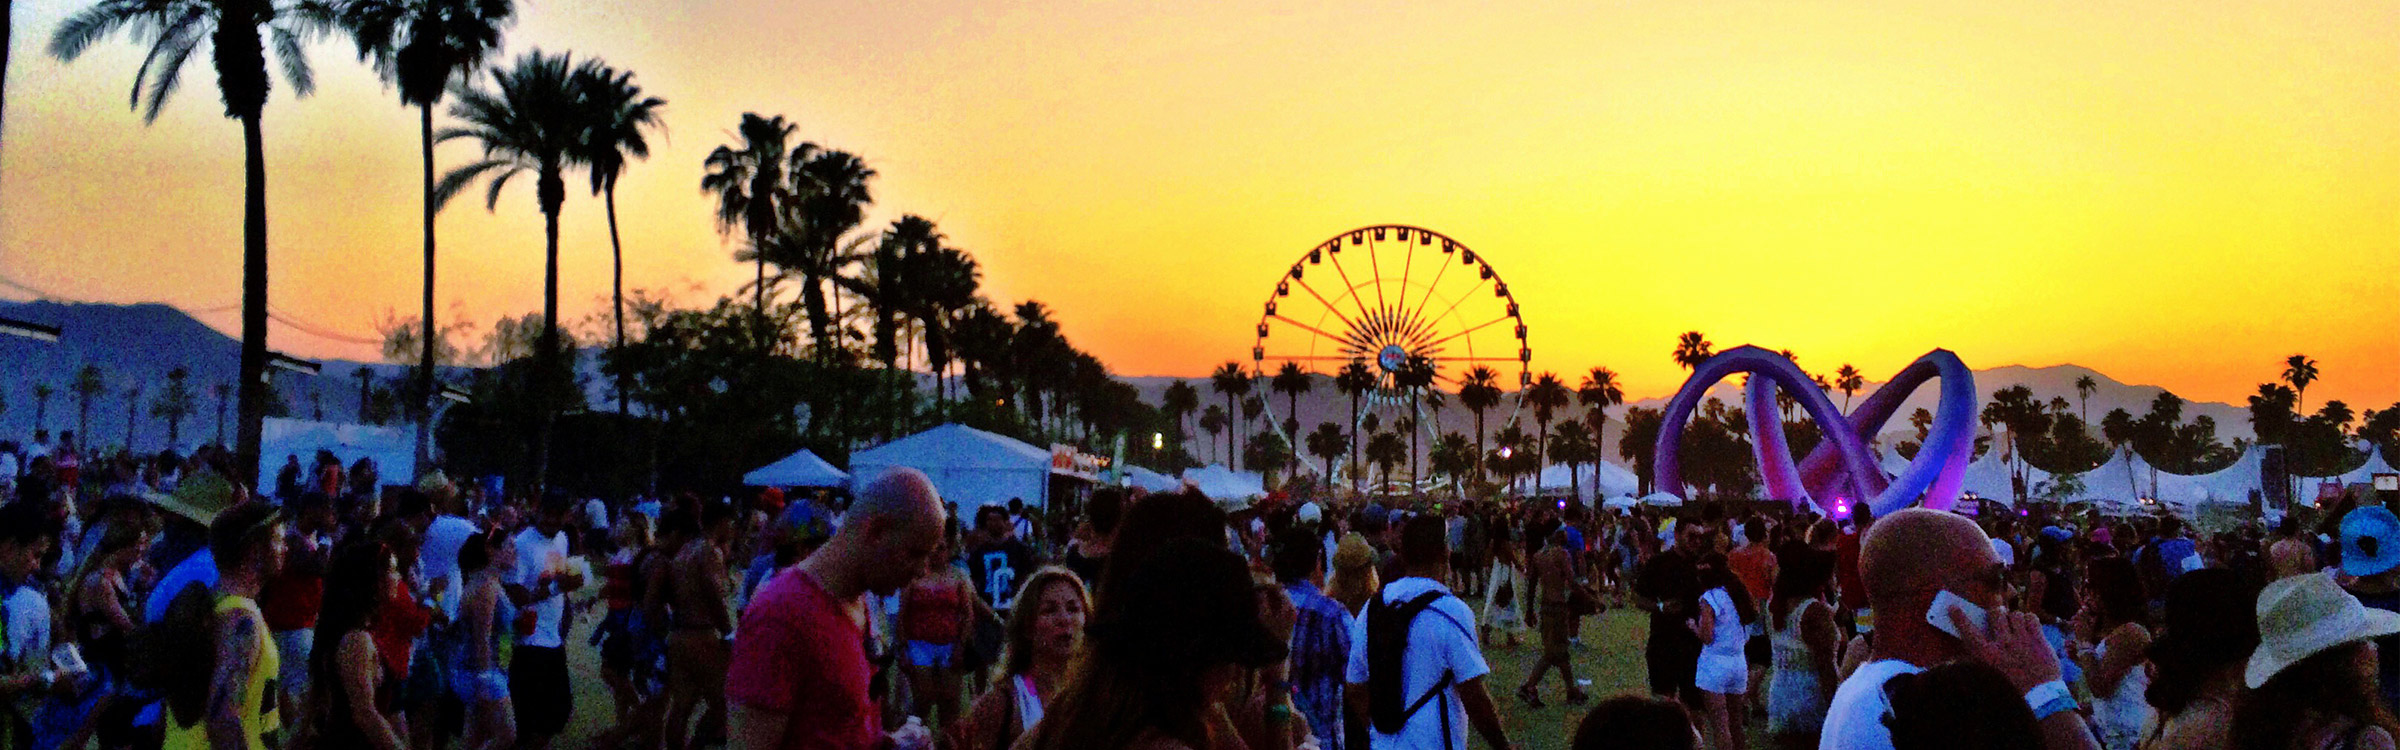 Coachella header